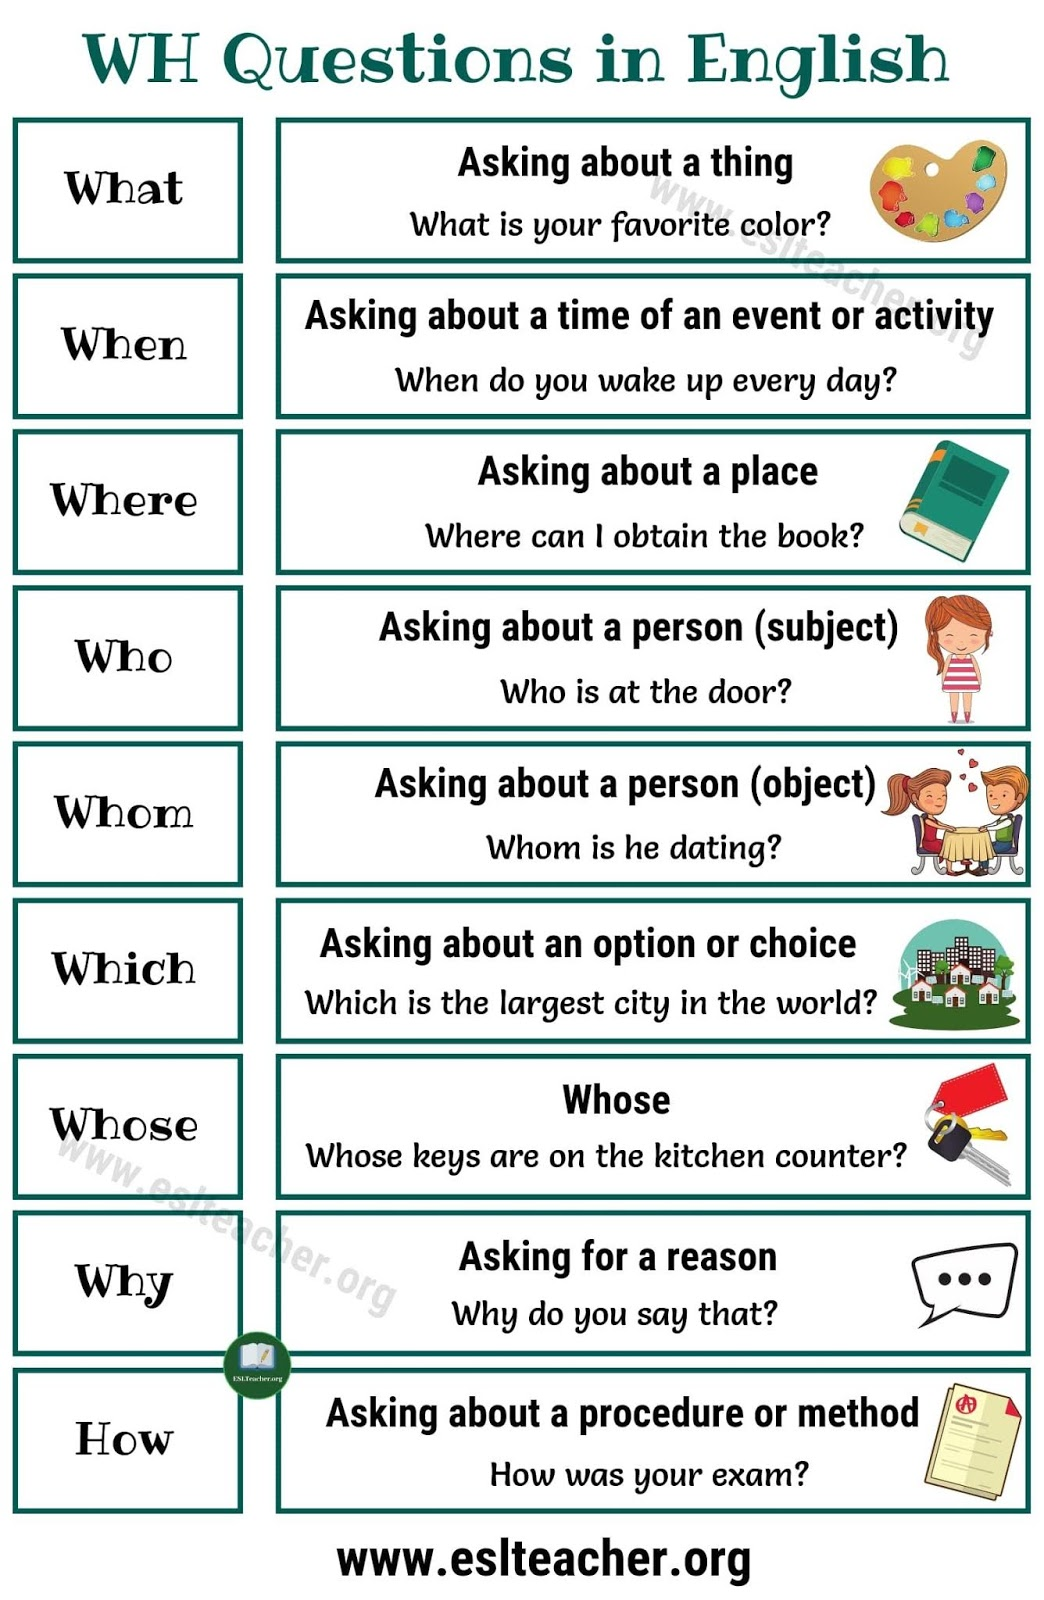 Octavo Ano Basico Lesson 2 Wh Question Words Worksheet